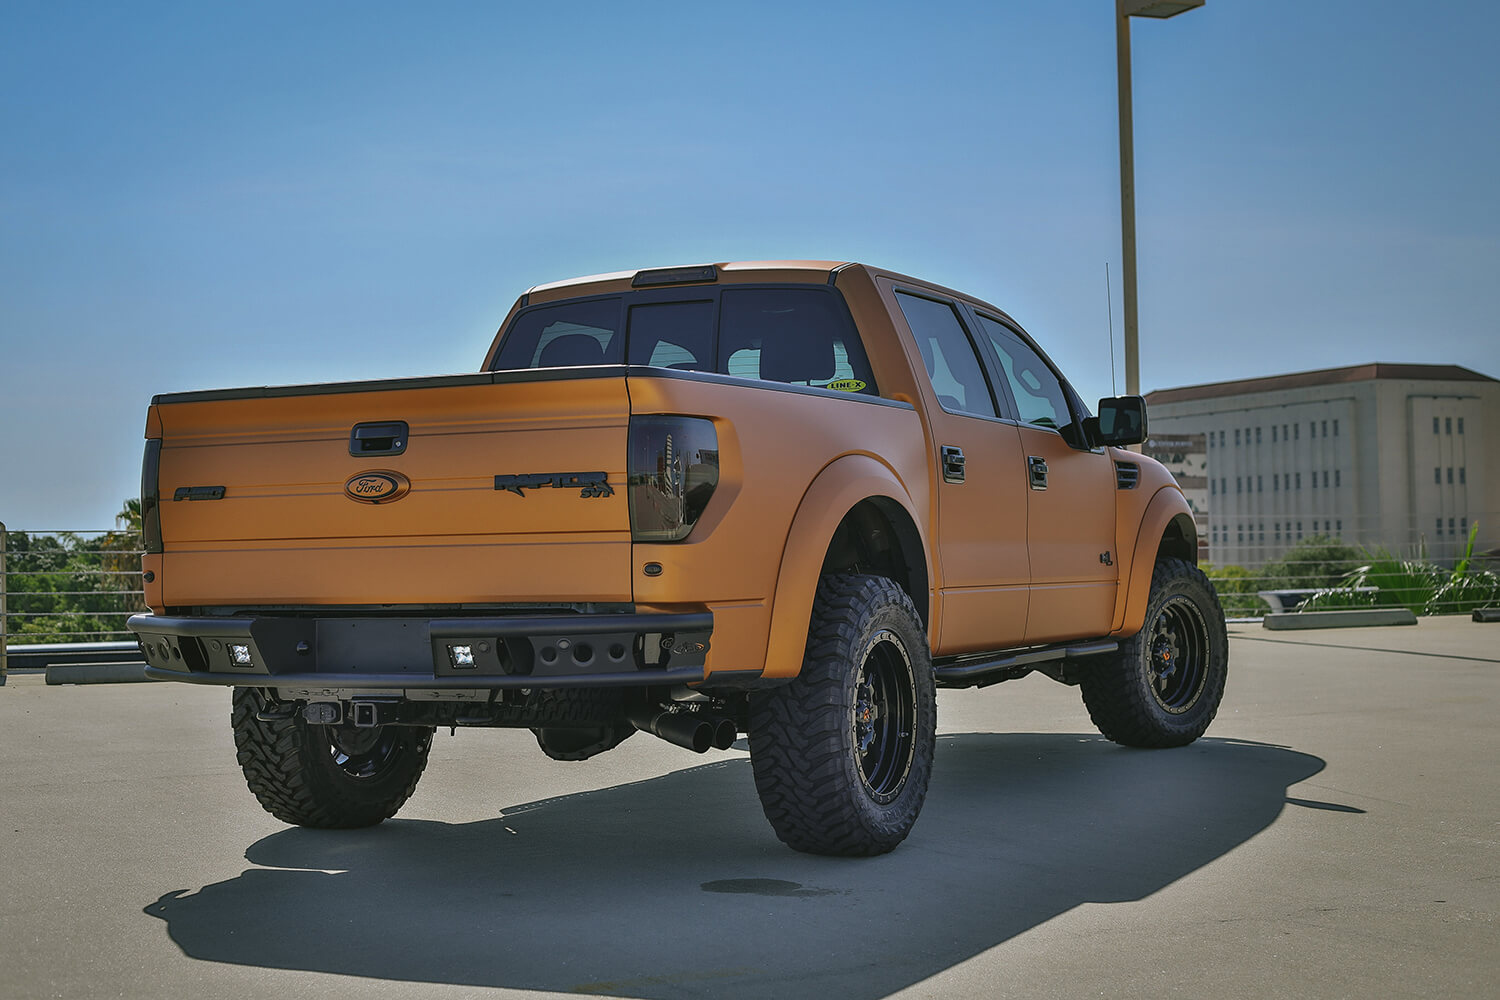 Addictive Desert Design Dimple R Rear Bumper Ford F-150 Raptor 10-14